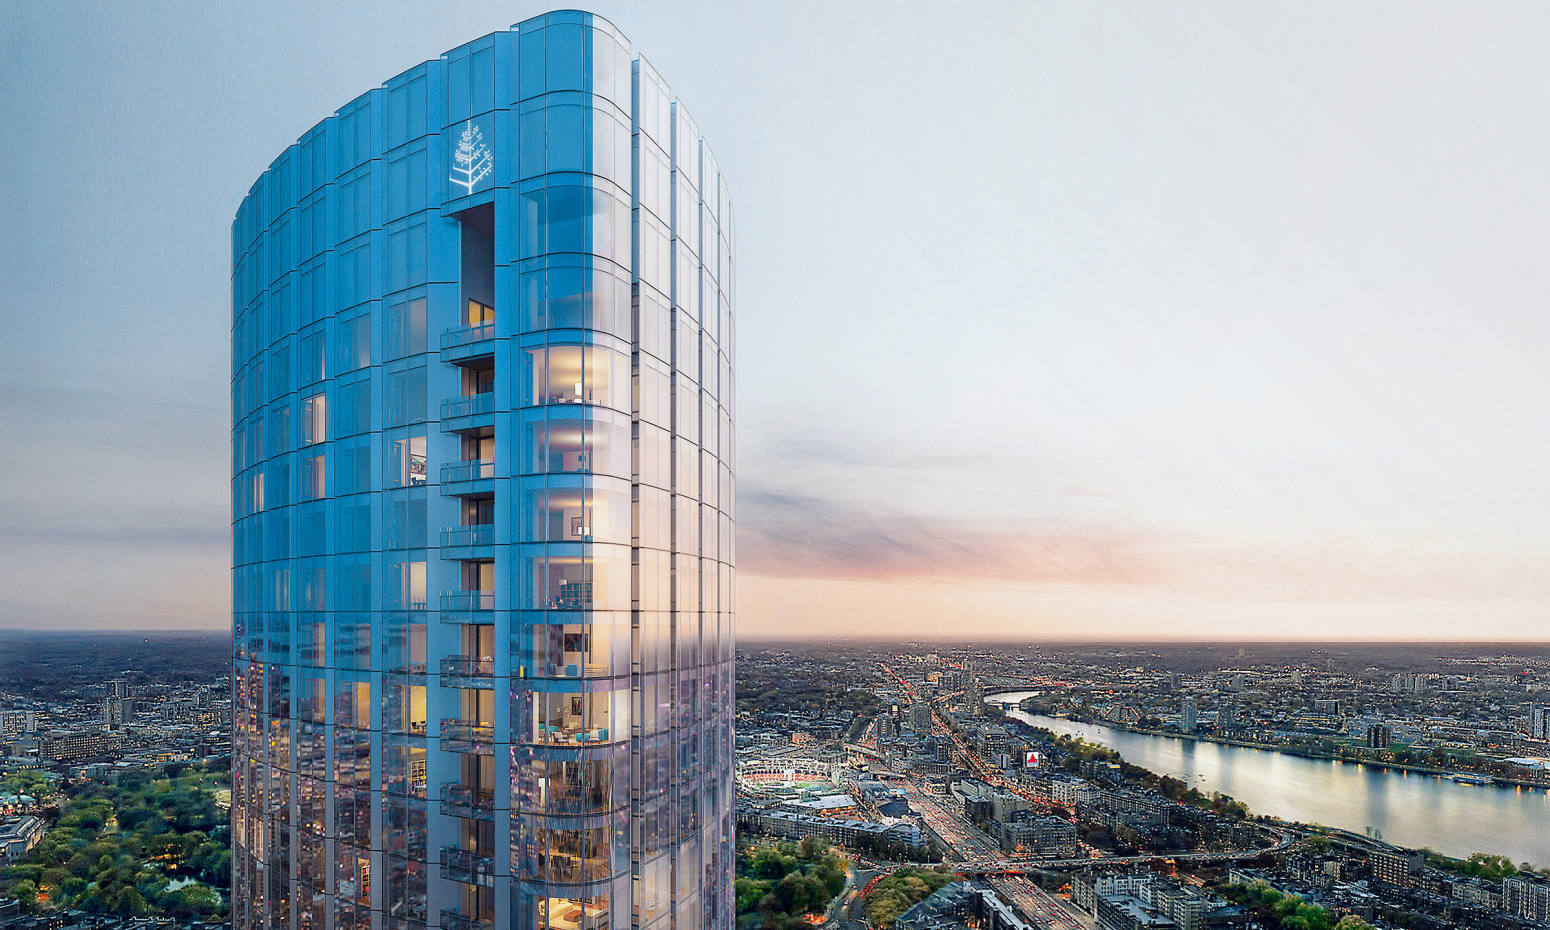 Four Seasons Private Residences One Dalton Street in Boston, where a penthouse recently sold for close to $40m